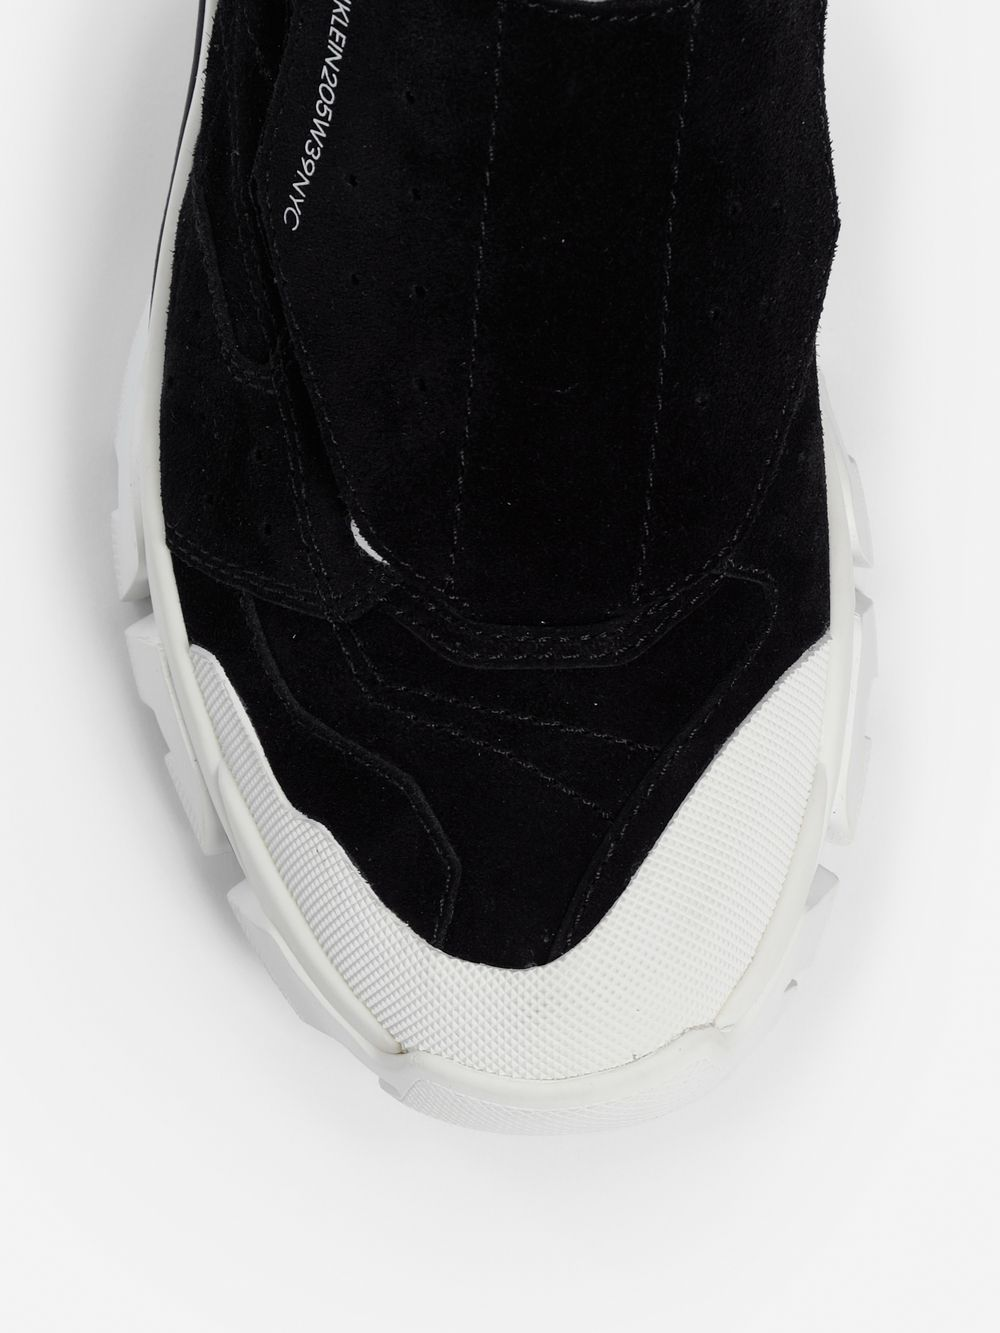 new product 0e707 53d13 K0006 blackwhite 7726 White Lace, Calvin Klein, Sneaker, Sneakers, Athletic  Shoes,